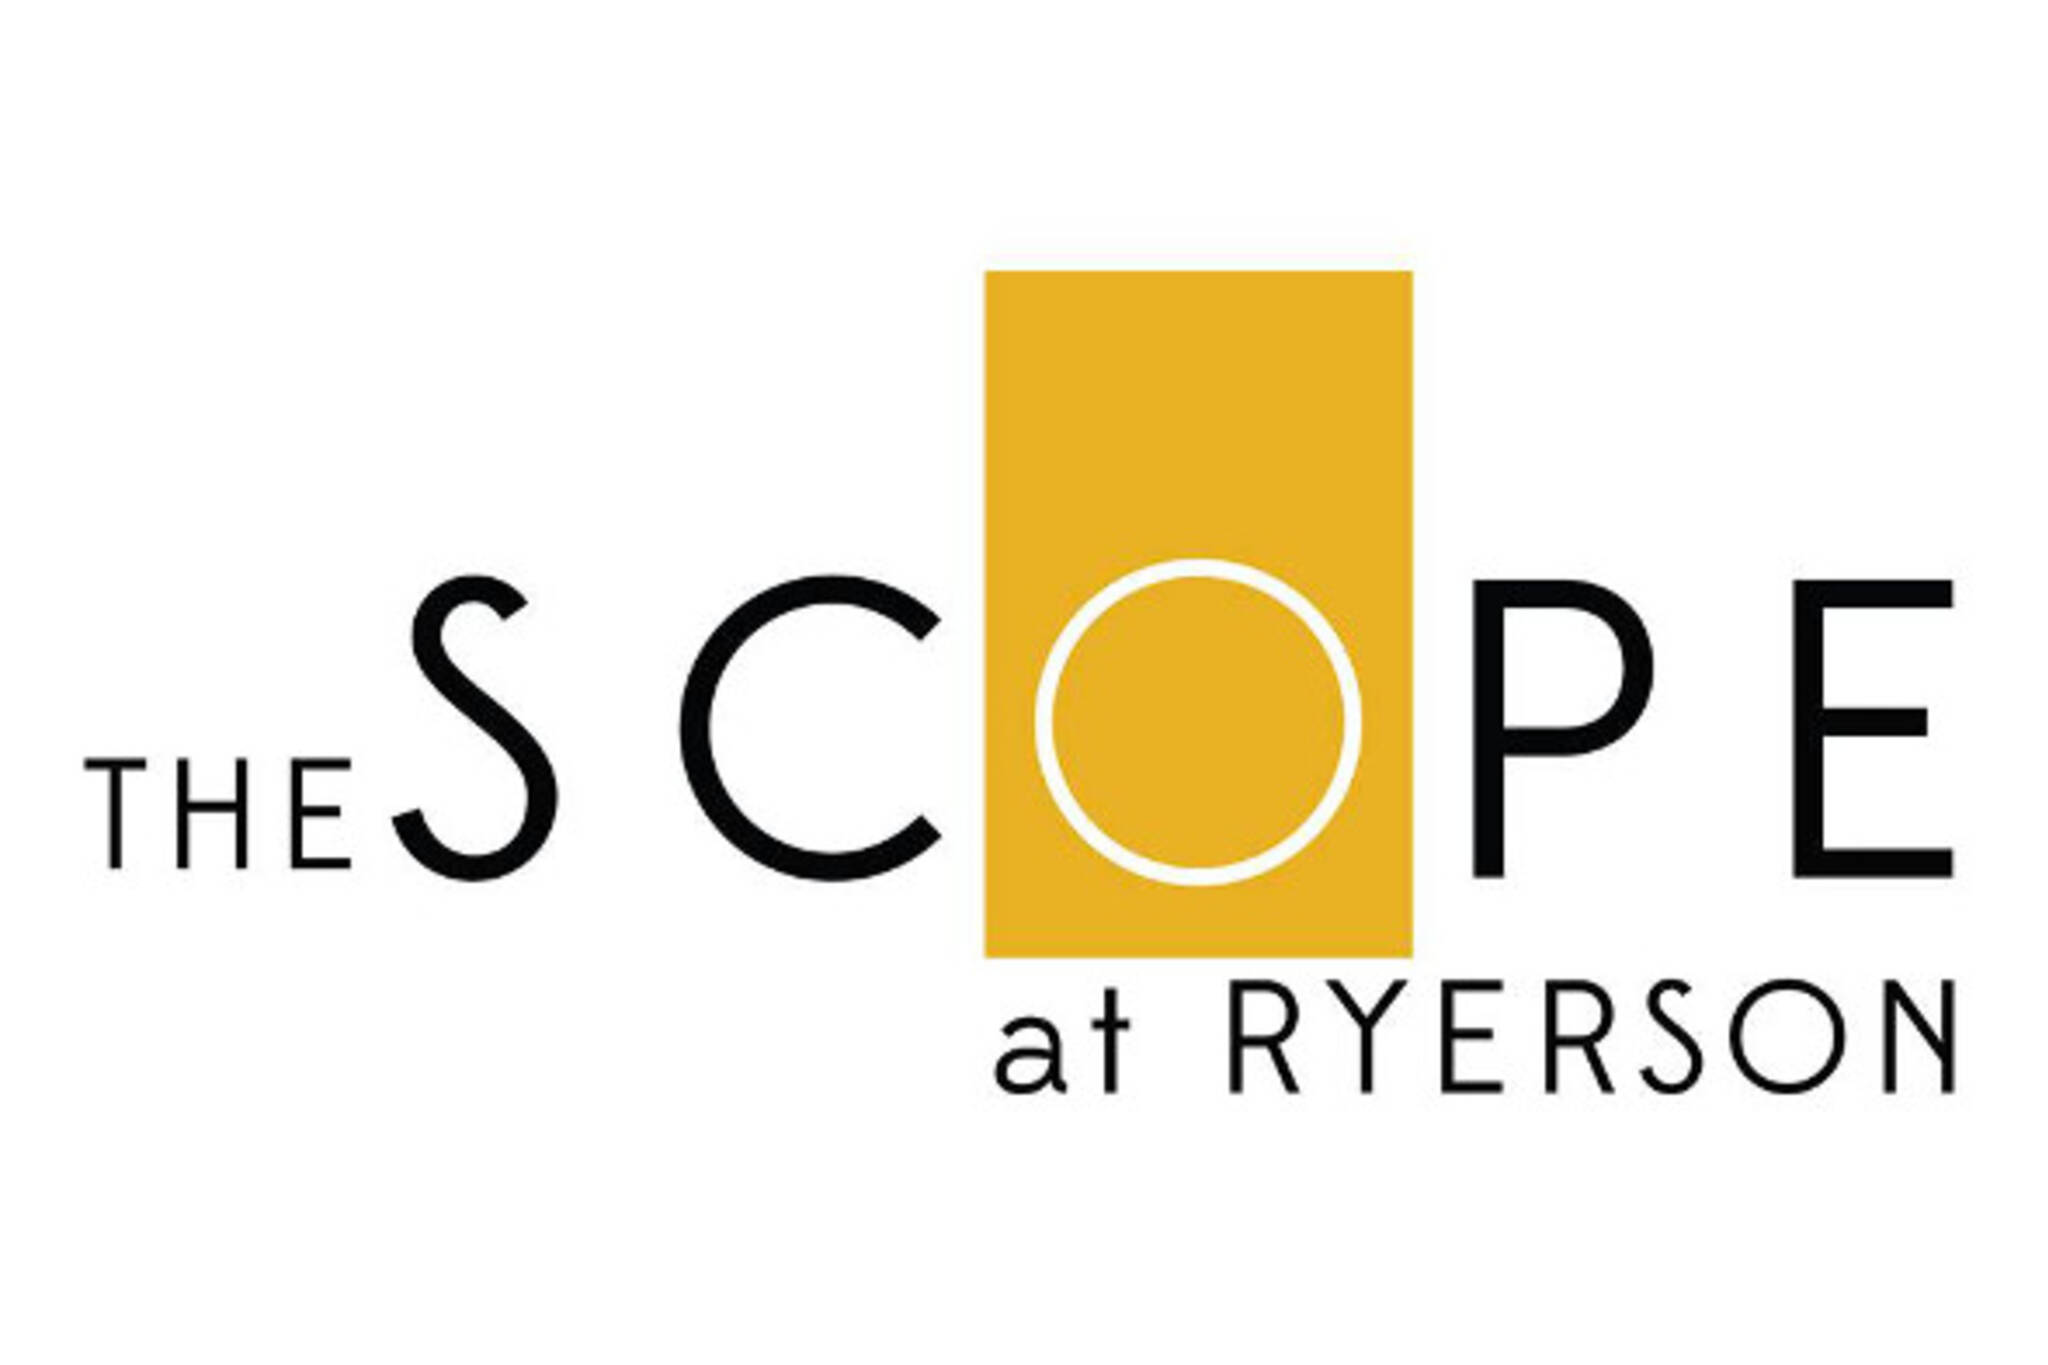 scope at ryerson toronto